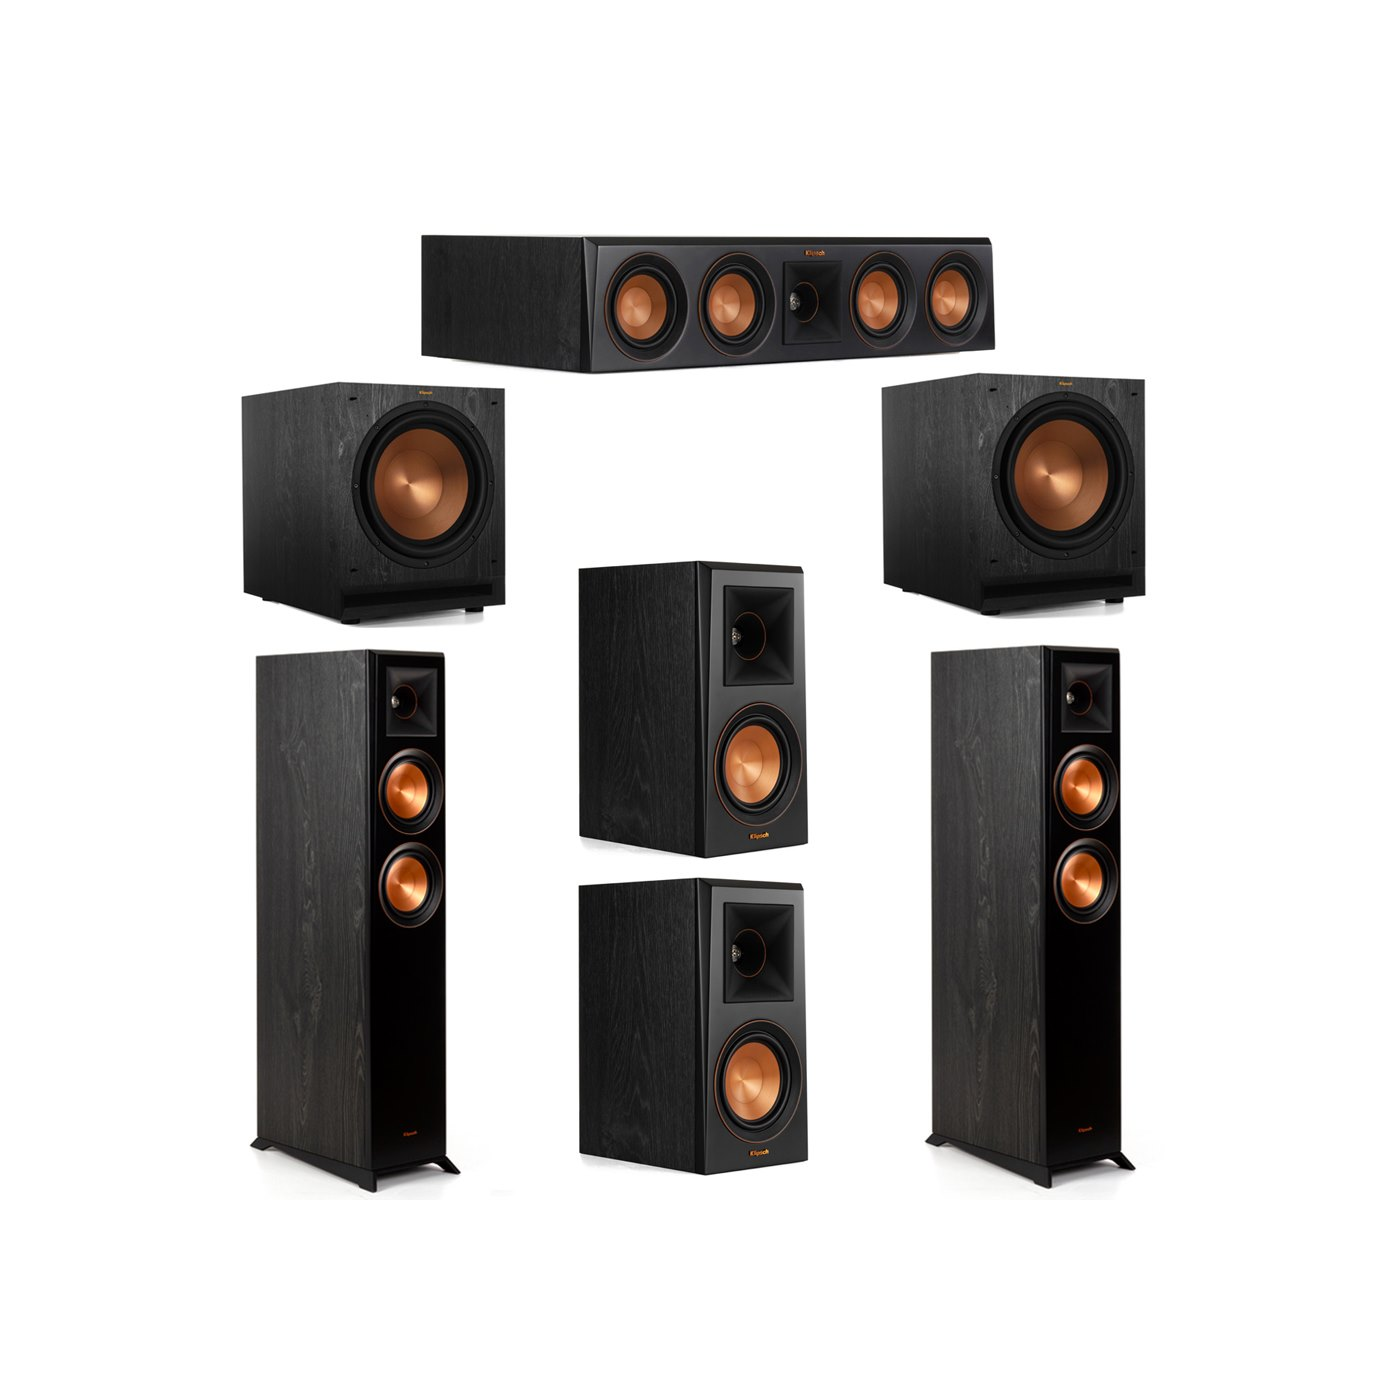 Klipsch 5.2 System with 2 RP-5000F Floorstanding Speakers, 1 Klipsch RP-404C Center Speaker, 2 Klipsch RP-500M Surround Speakers, 2 Klipsch SPL-120 Subwoofers